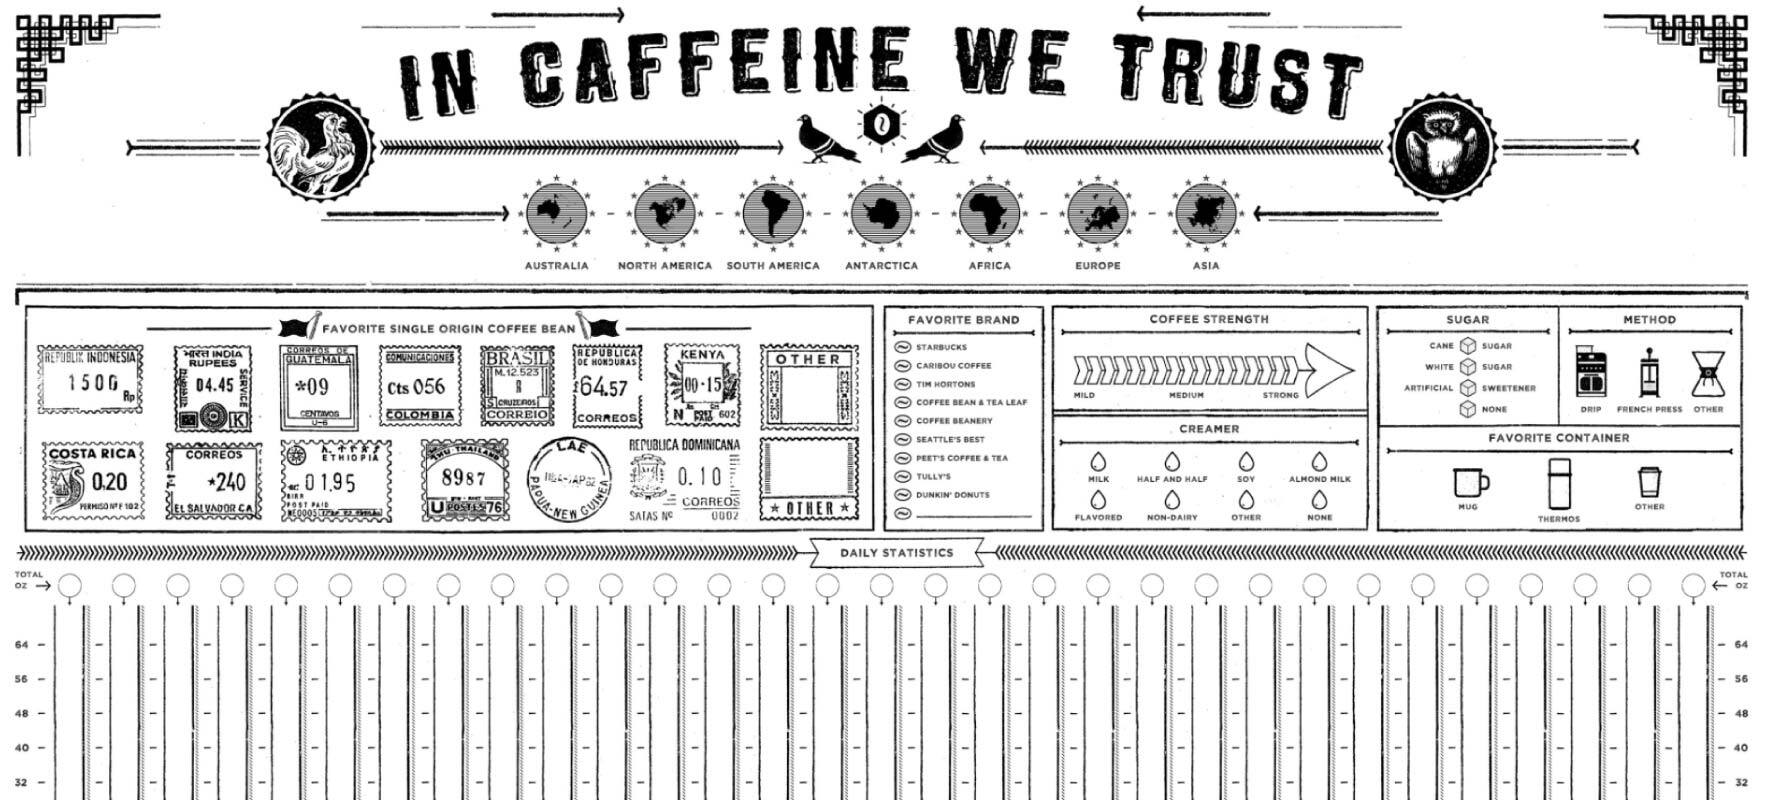 Infographic Examples In caffeine We Trust